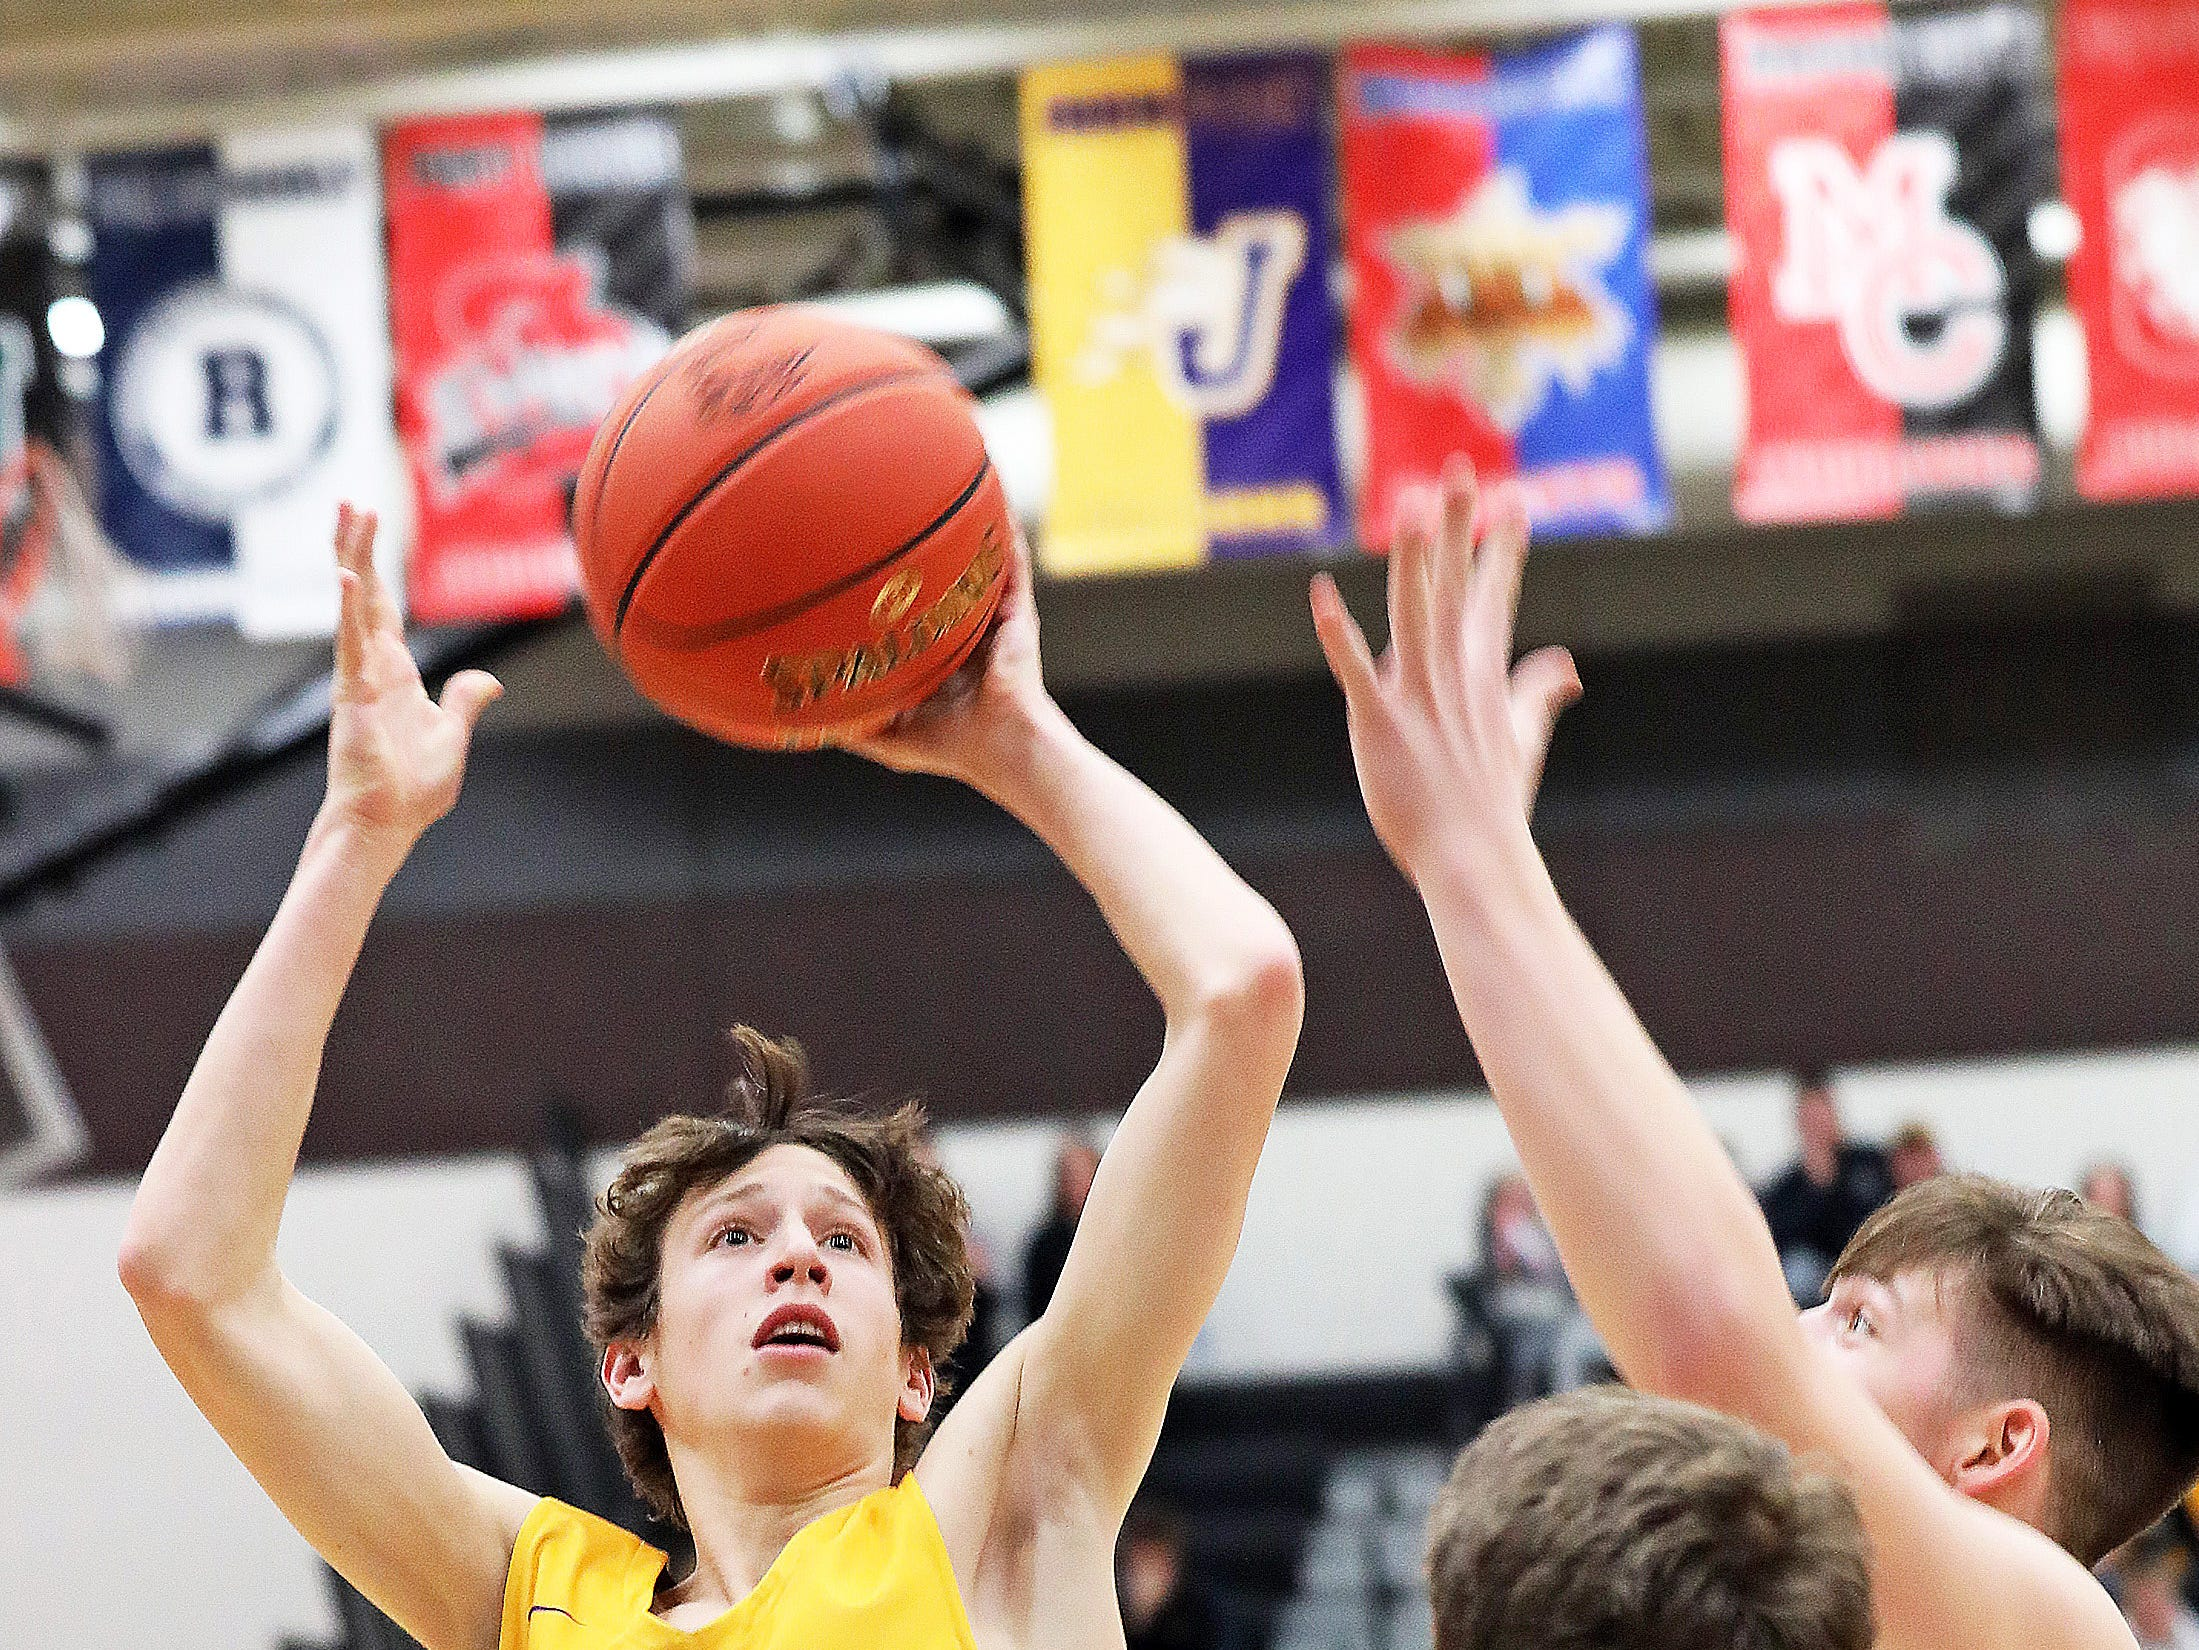 Johnston junior Garrett Miller sinks the running lay-up as the Johnston Dragons compete against the Ankeny Centennial Jaguars in high school boys basketball on Friday, Jan. 4, 2019 at Ankeny Centennial High School.  Ankeny won 53 to 46.